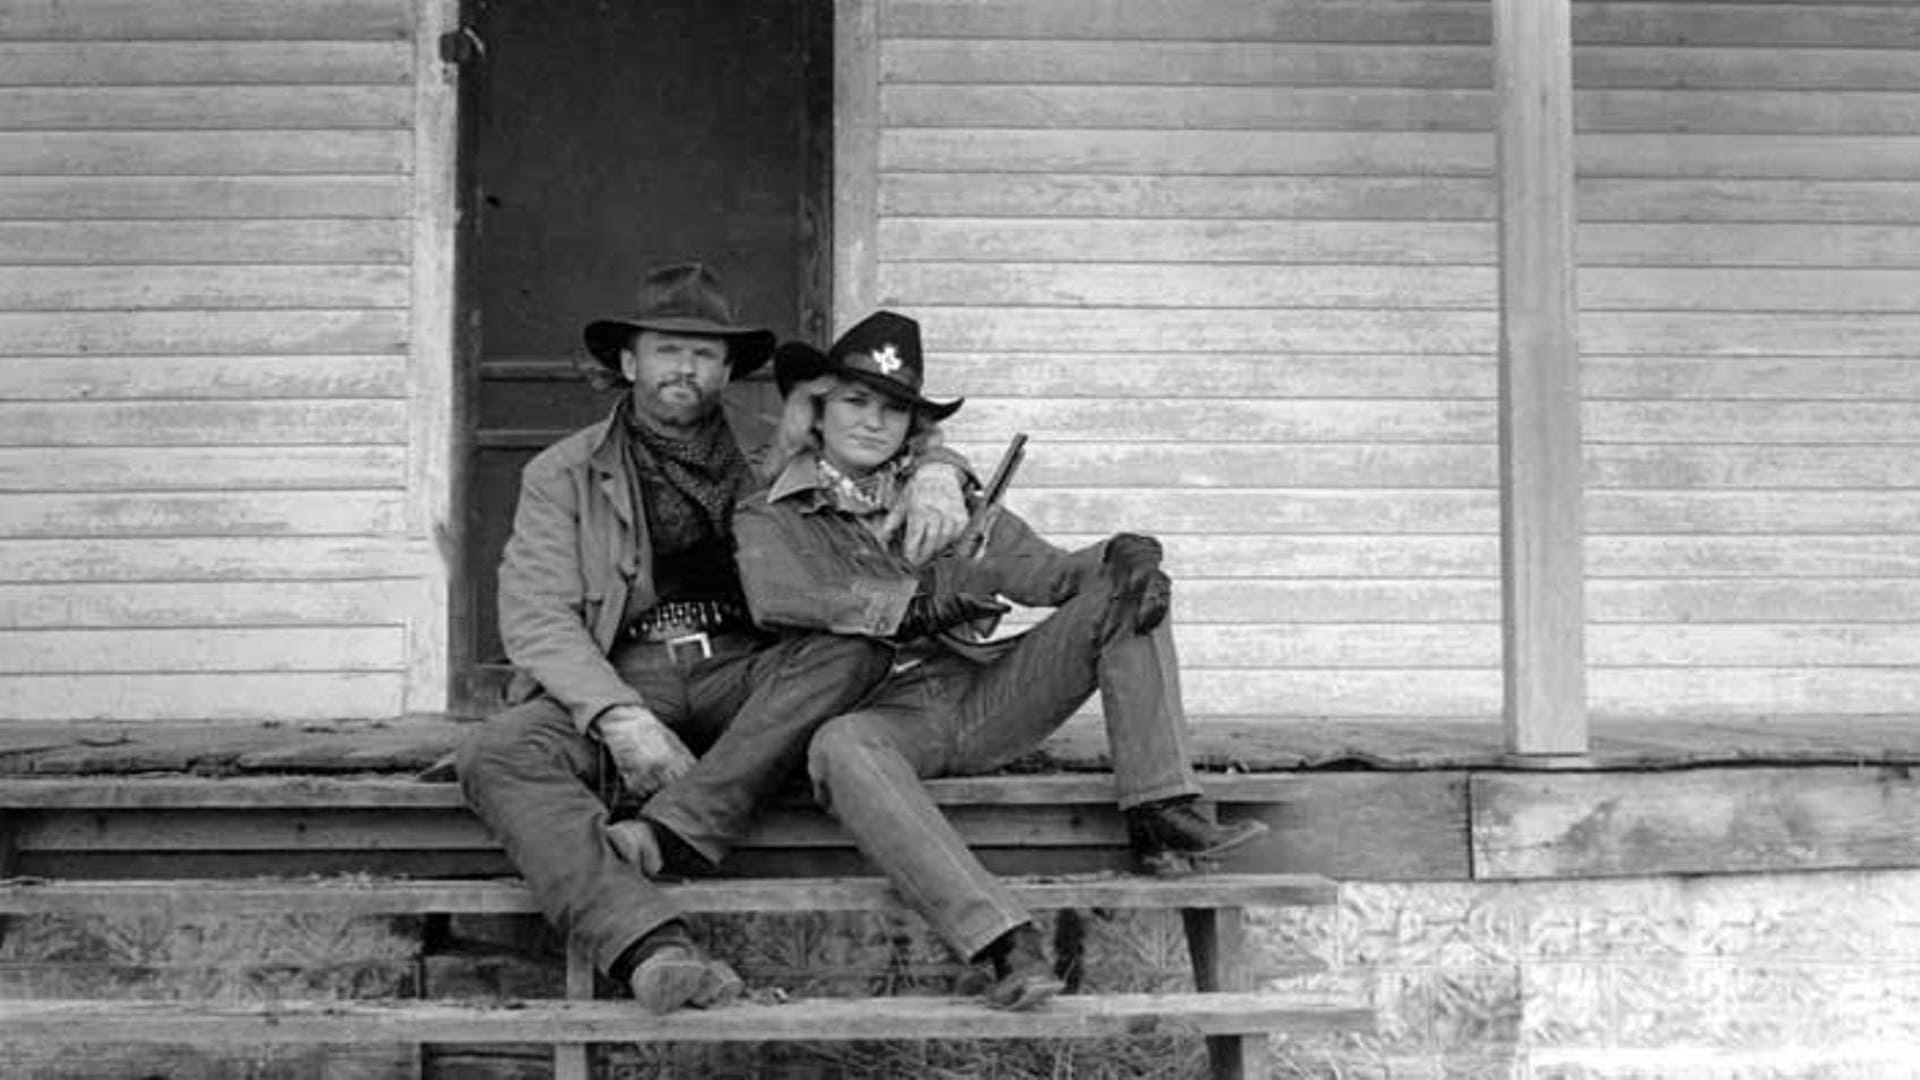 The Last Days of Frank and Jesse James